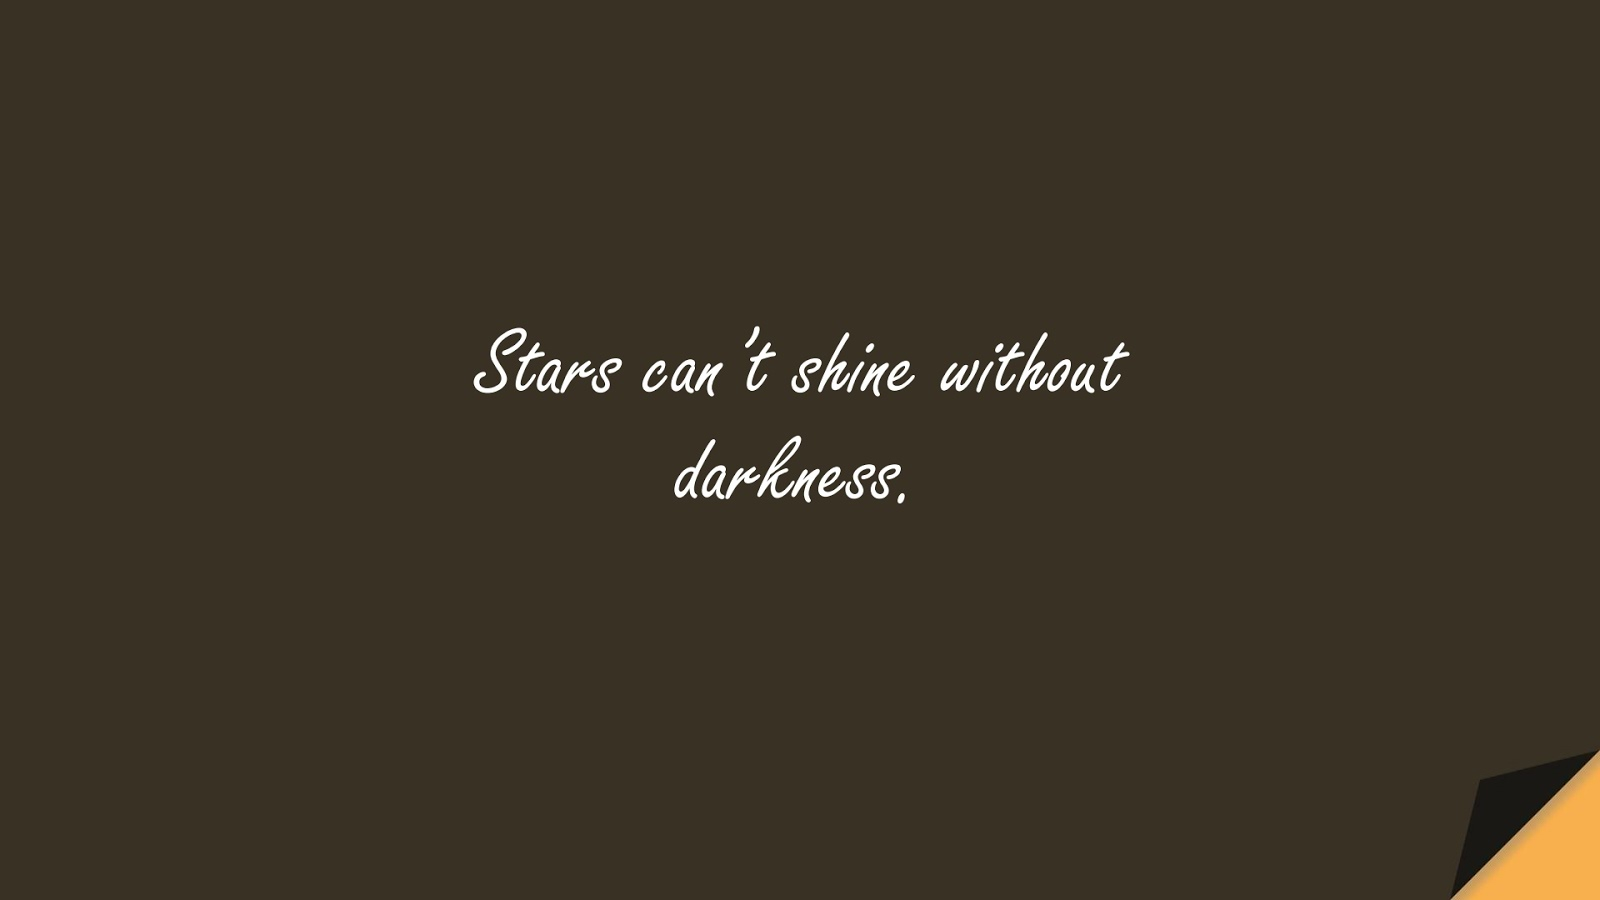 Stars can't shine without darkness.FALSE